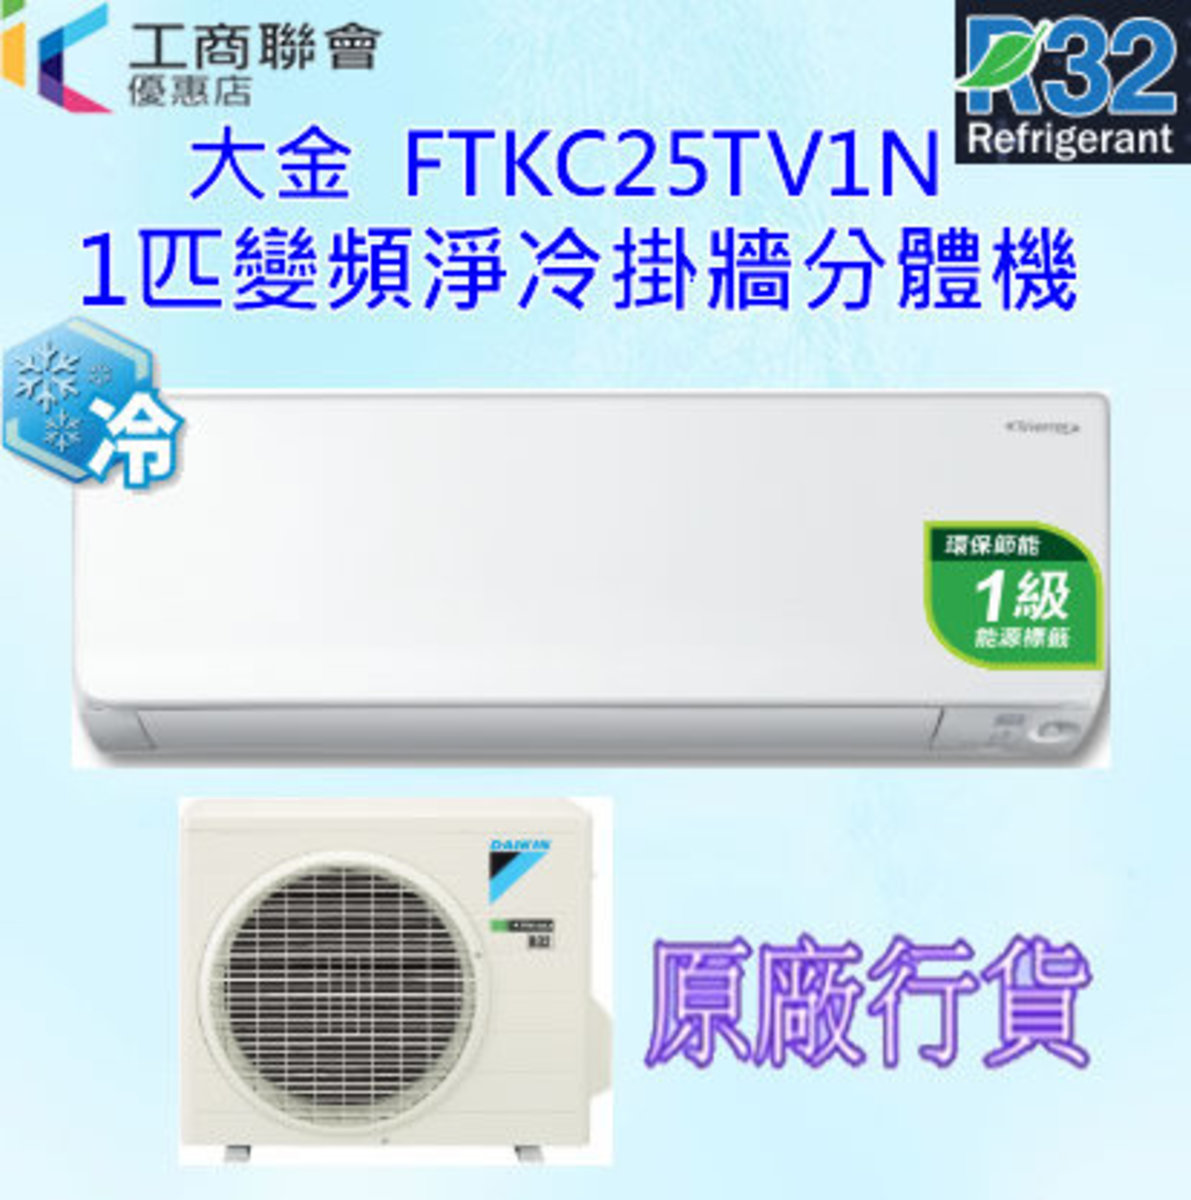 Daikin FTKC25TV1N One R32 variable frequency net cold split air conditioner